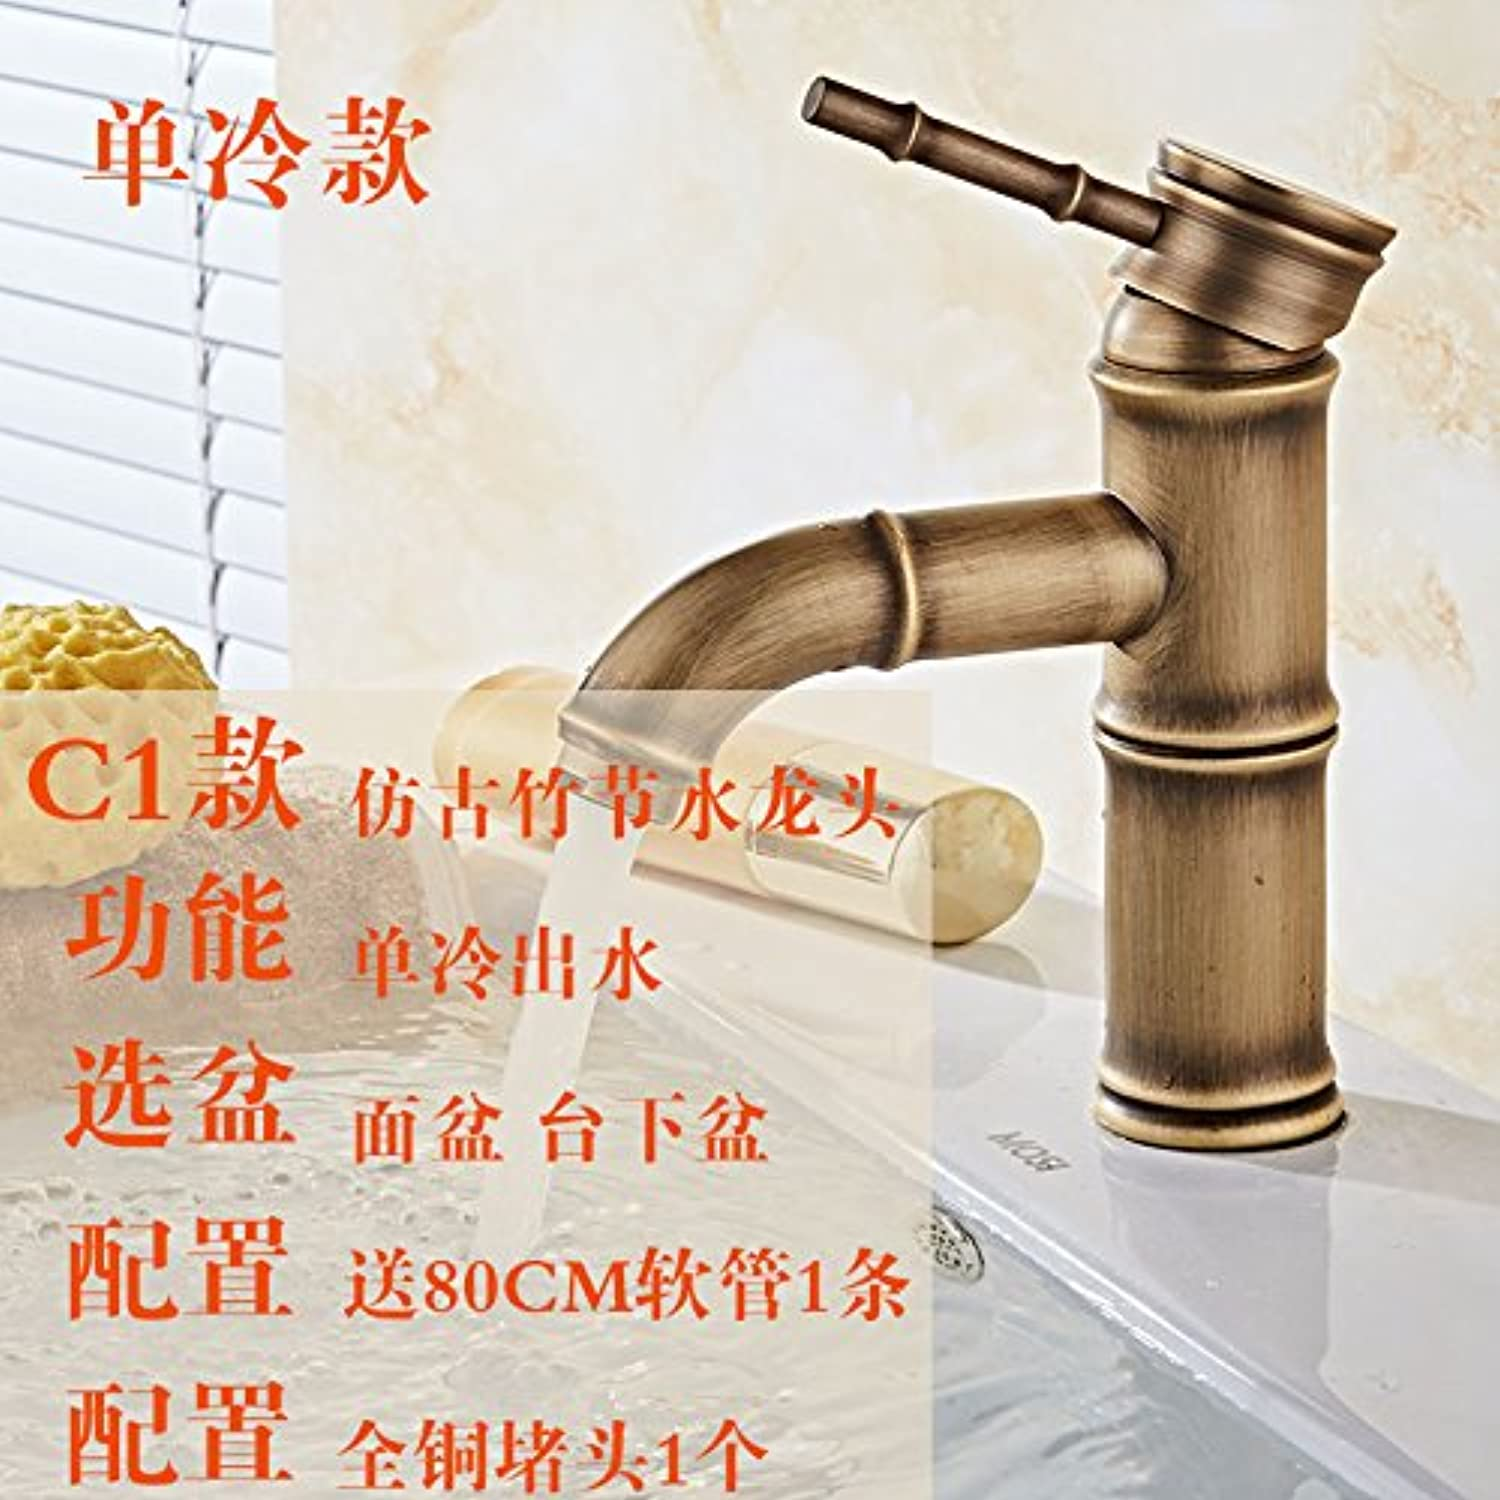 Hlluya Professional Sink Mixer Tap Kitchen Faucet Black cold-hot surface Sinks Faucets antique washbasin full copper plus high bamboo-C1 single cold tap.